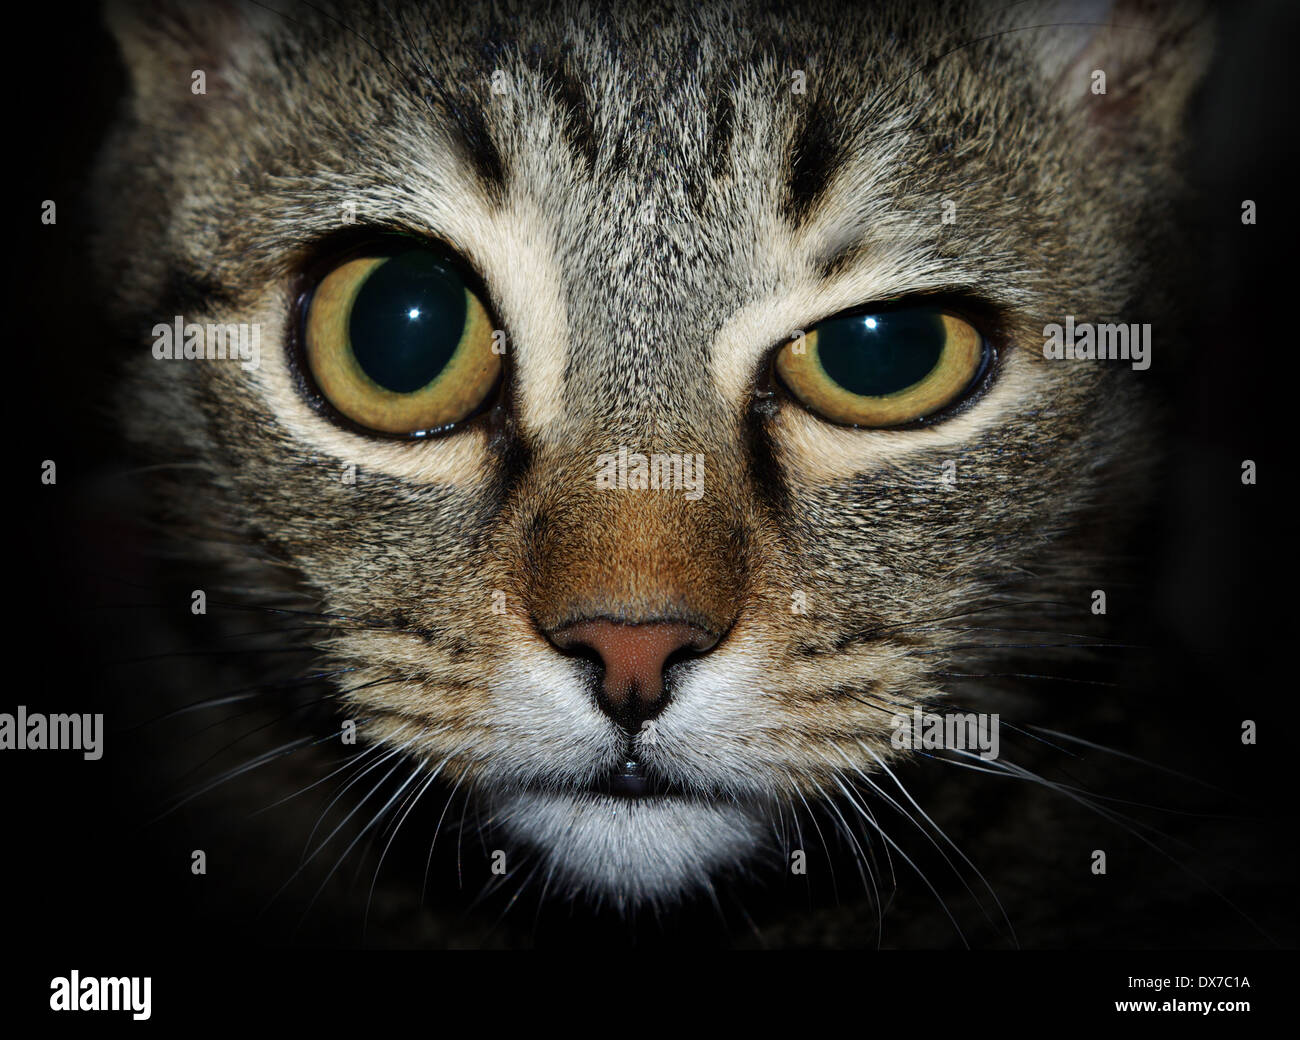 crazy cat looking at you - Stock Image